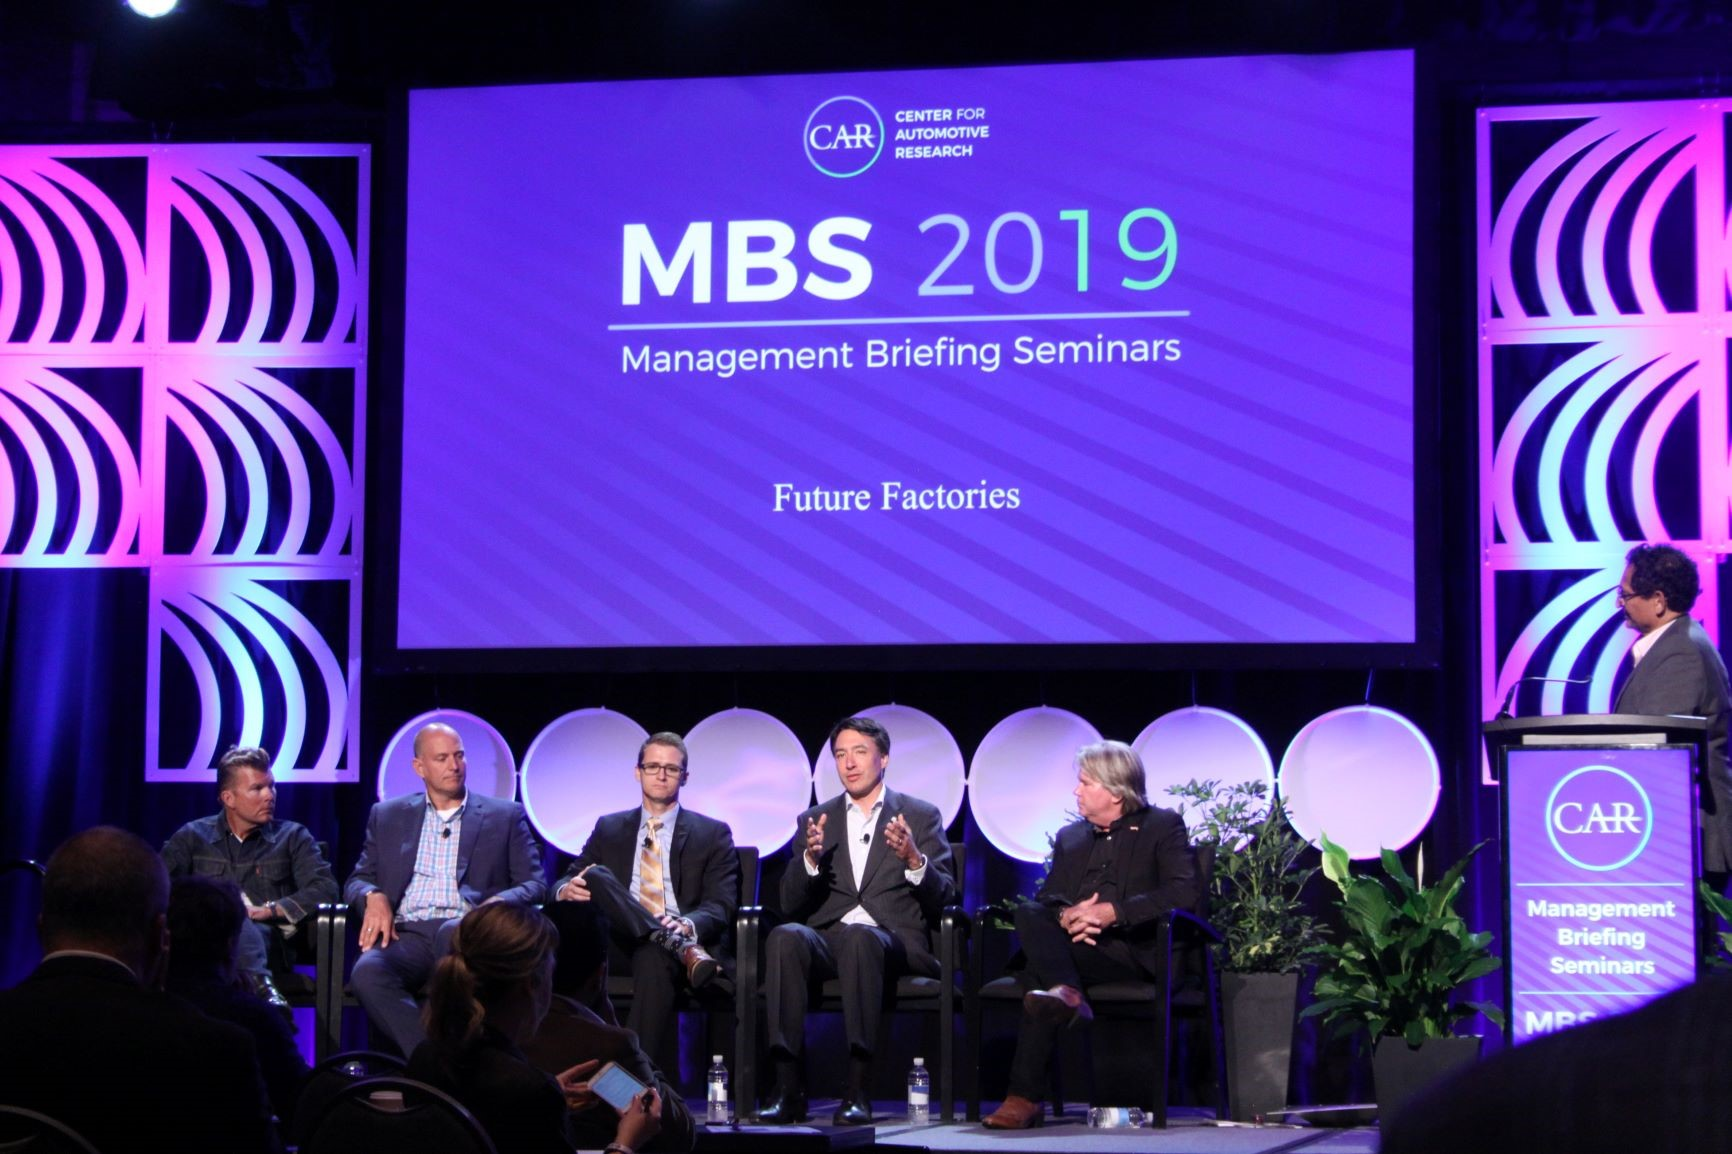 facton-ceo-alexander-m-swoboda-at-car-mbs-2019-panel-discussion-on-future-factories